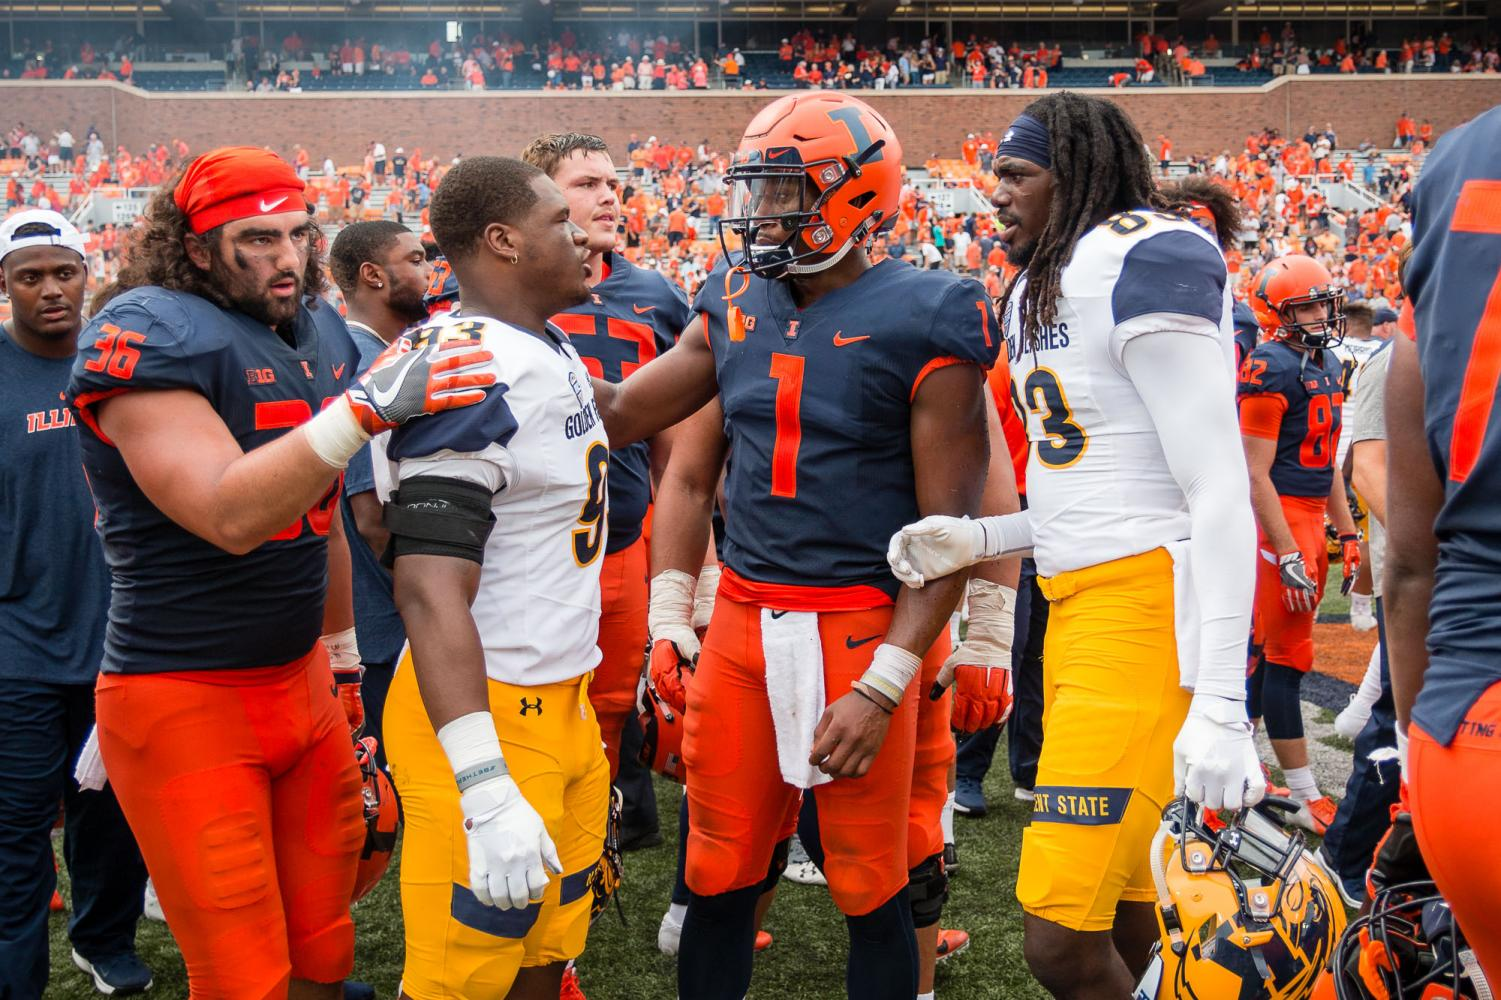 Illinois quarterback AJ Bush (1) talks to Kent State defensive lineman Matt Bell (93) and wide receiver Lon'kevious McFadden (83) after the game at Memorial Stadium on Saturday, Sept. 1, 2018.